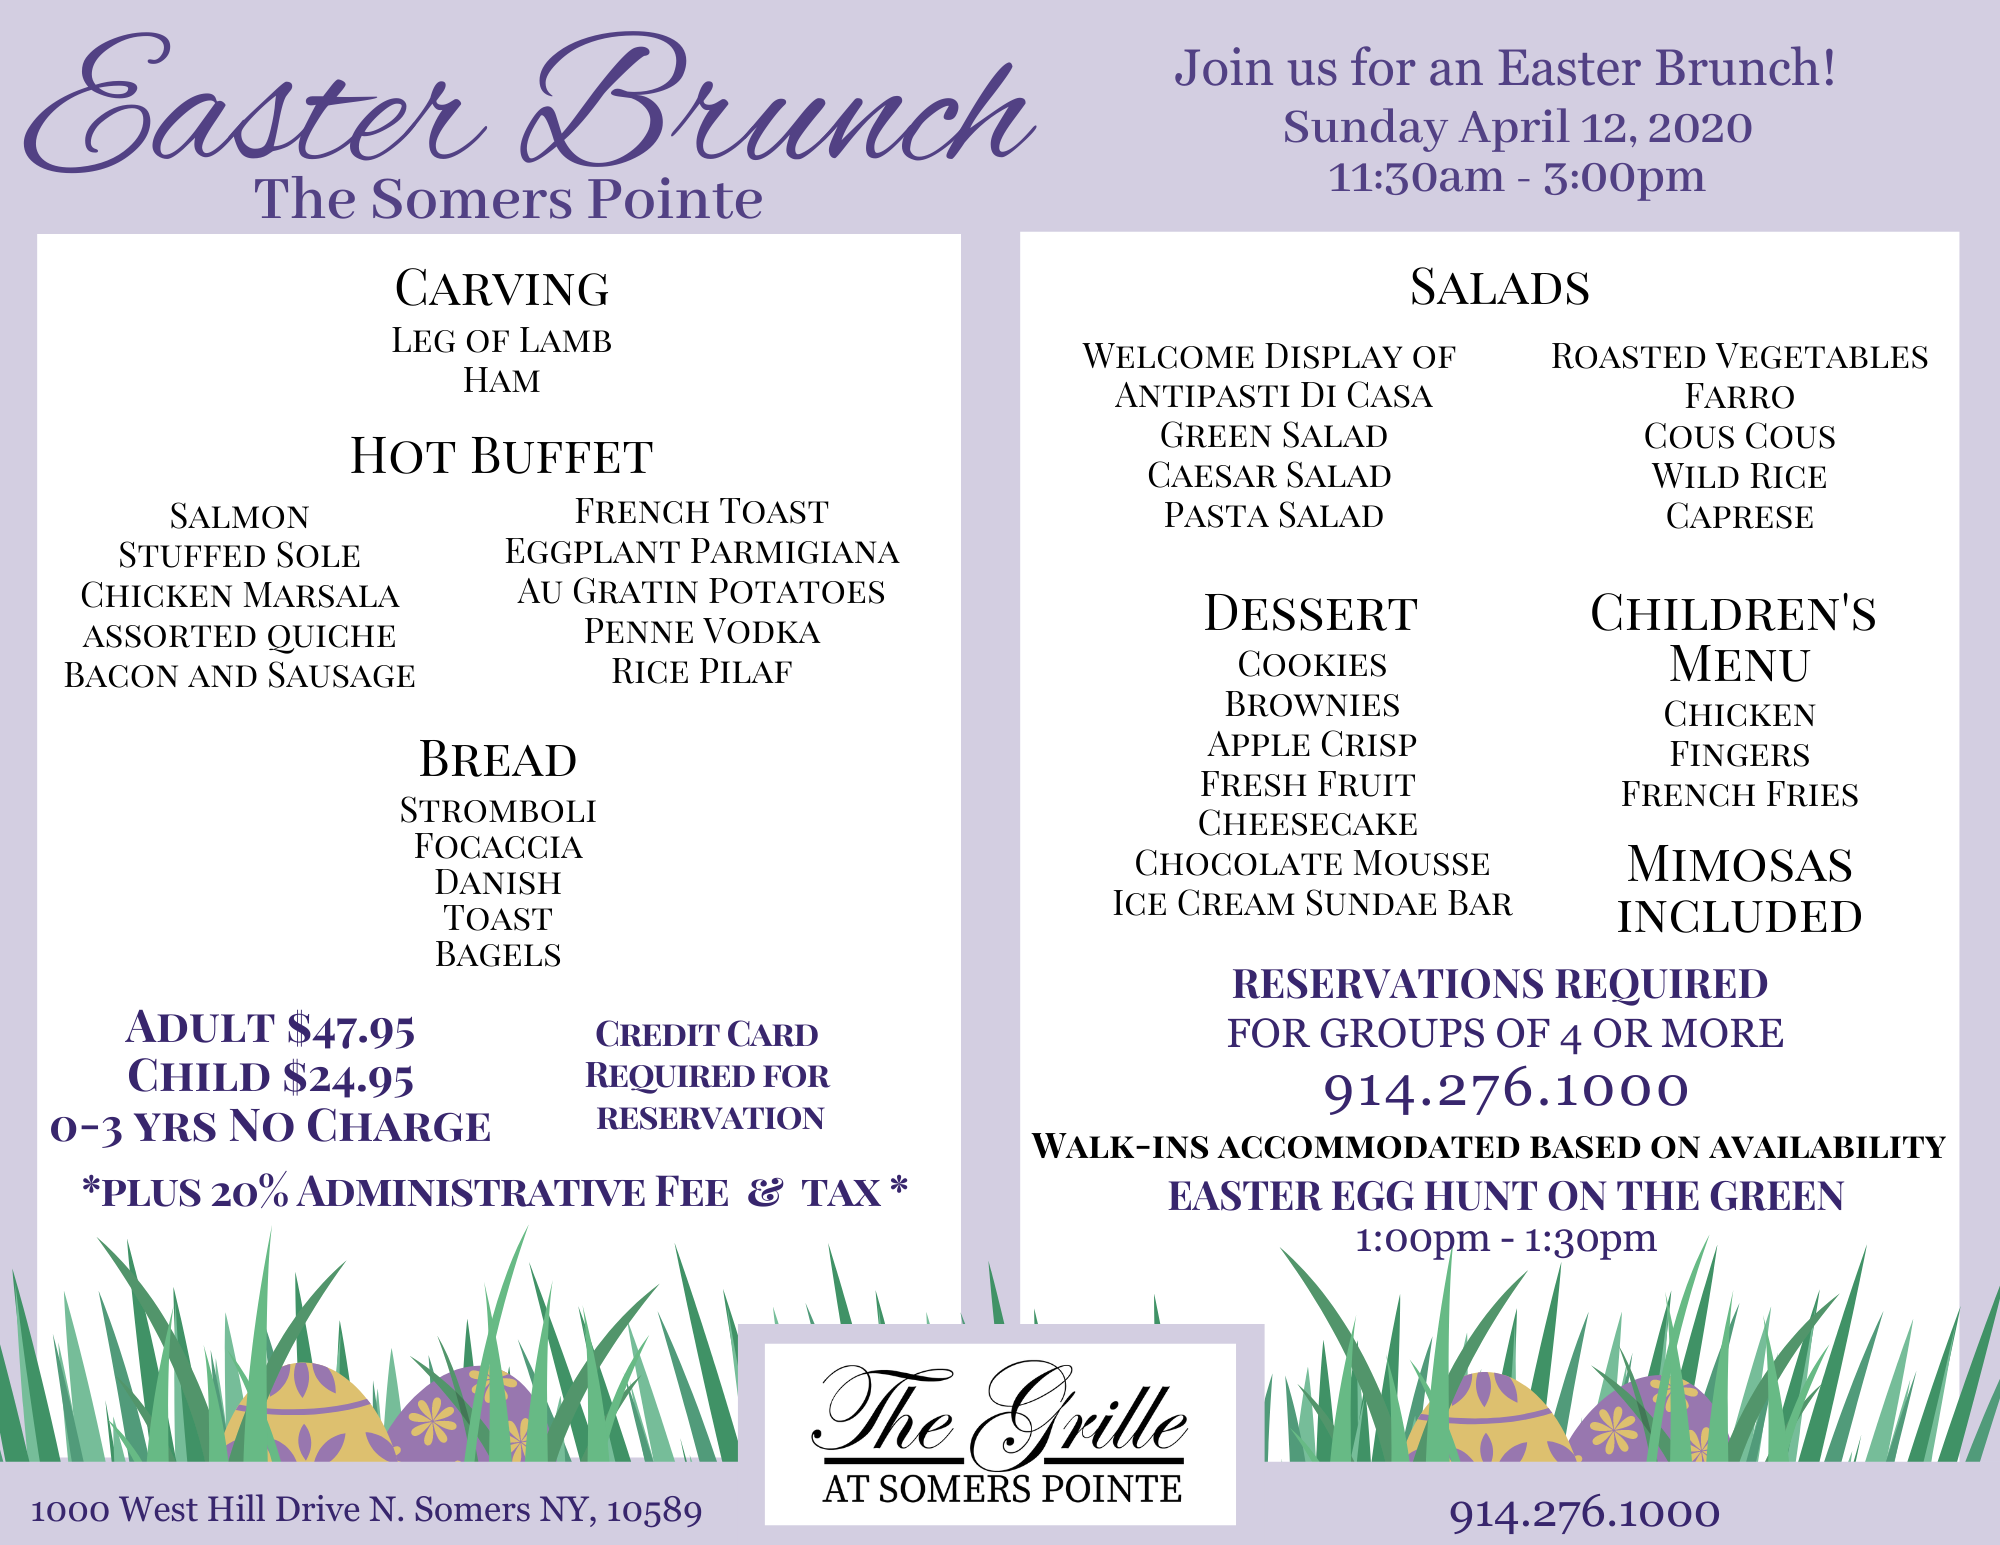 Easter Brunch at The Somers Pointe Event Details